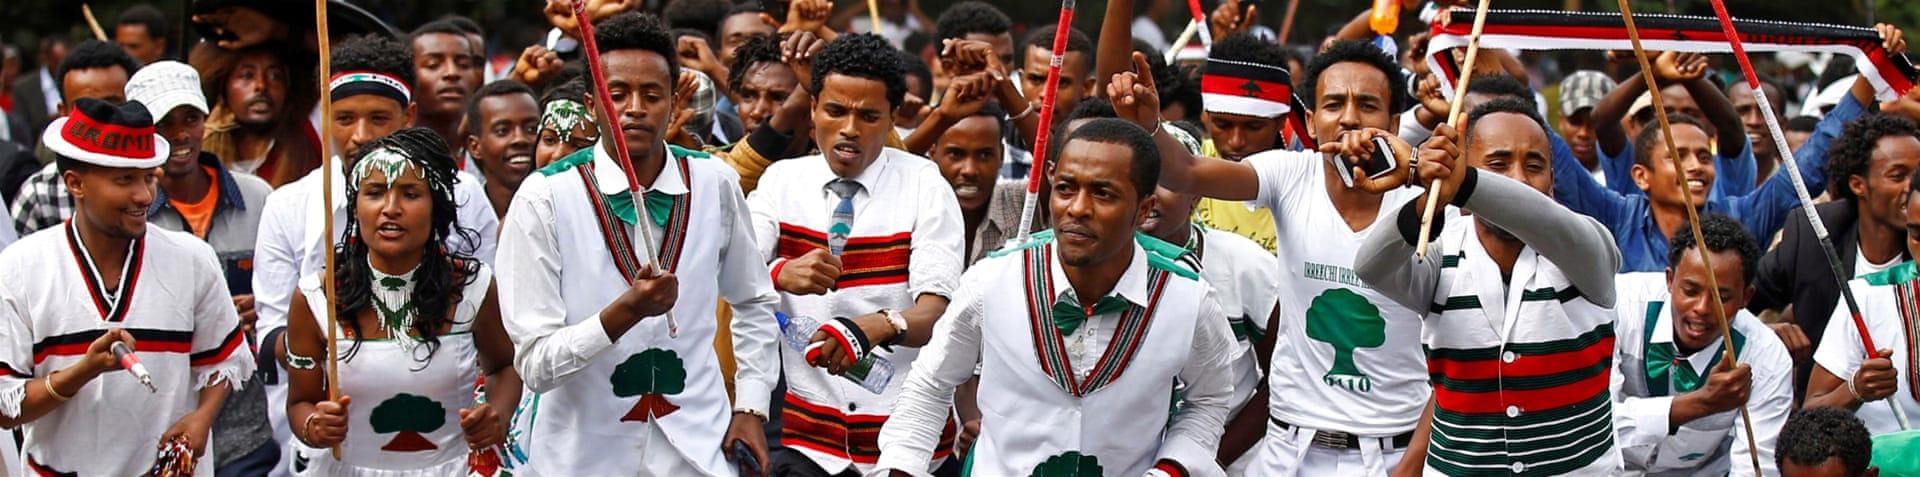 Anti-government protests erupted in Ethiopia in November [Reuters]